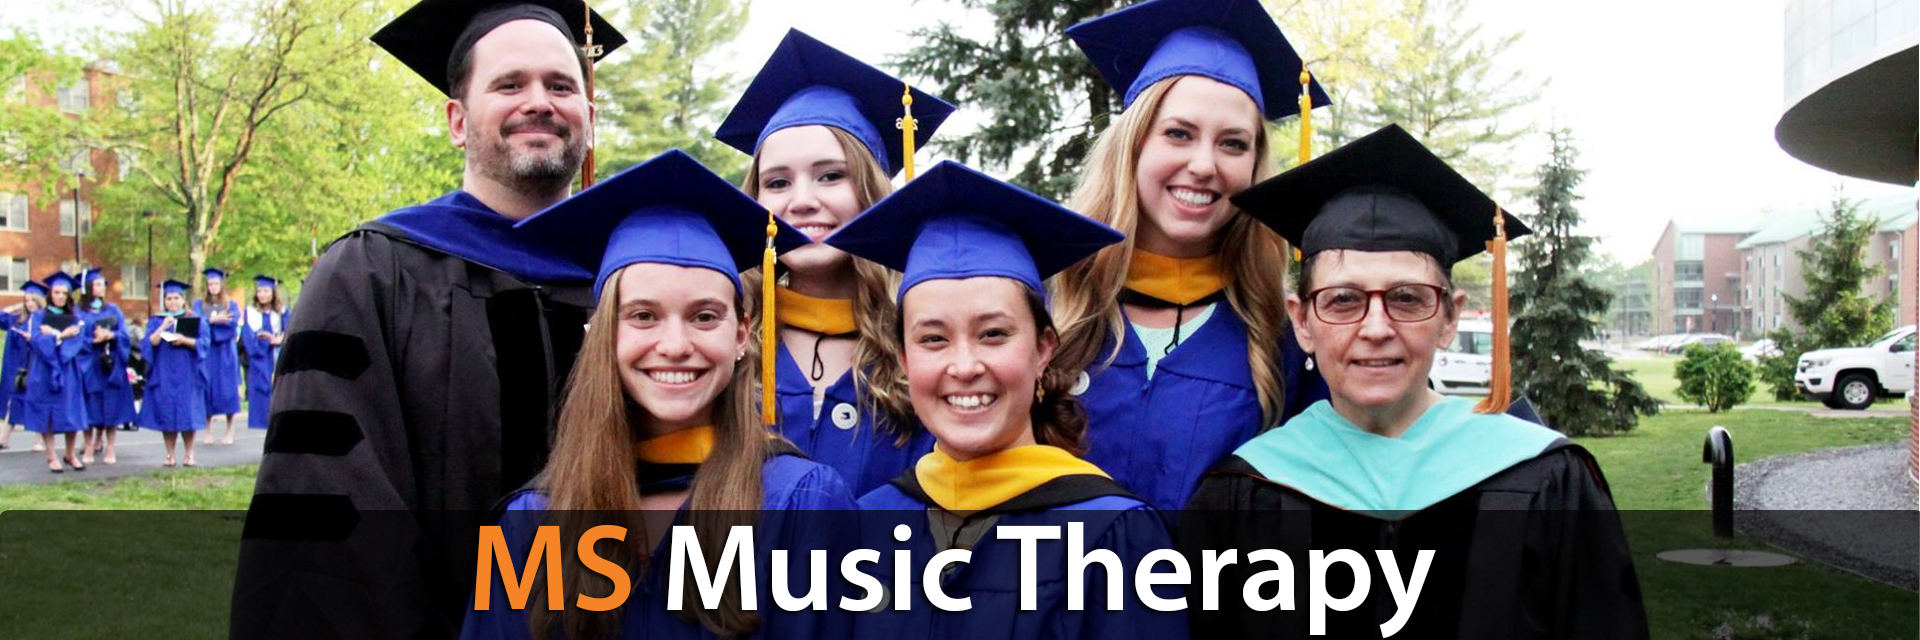 MS Music Therapy